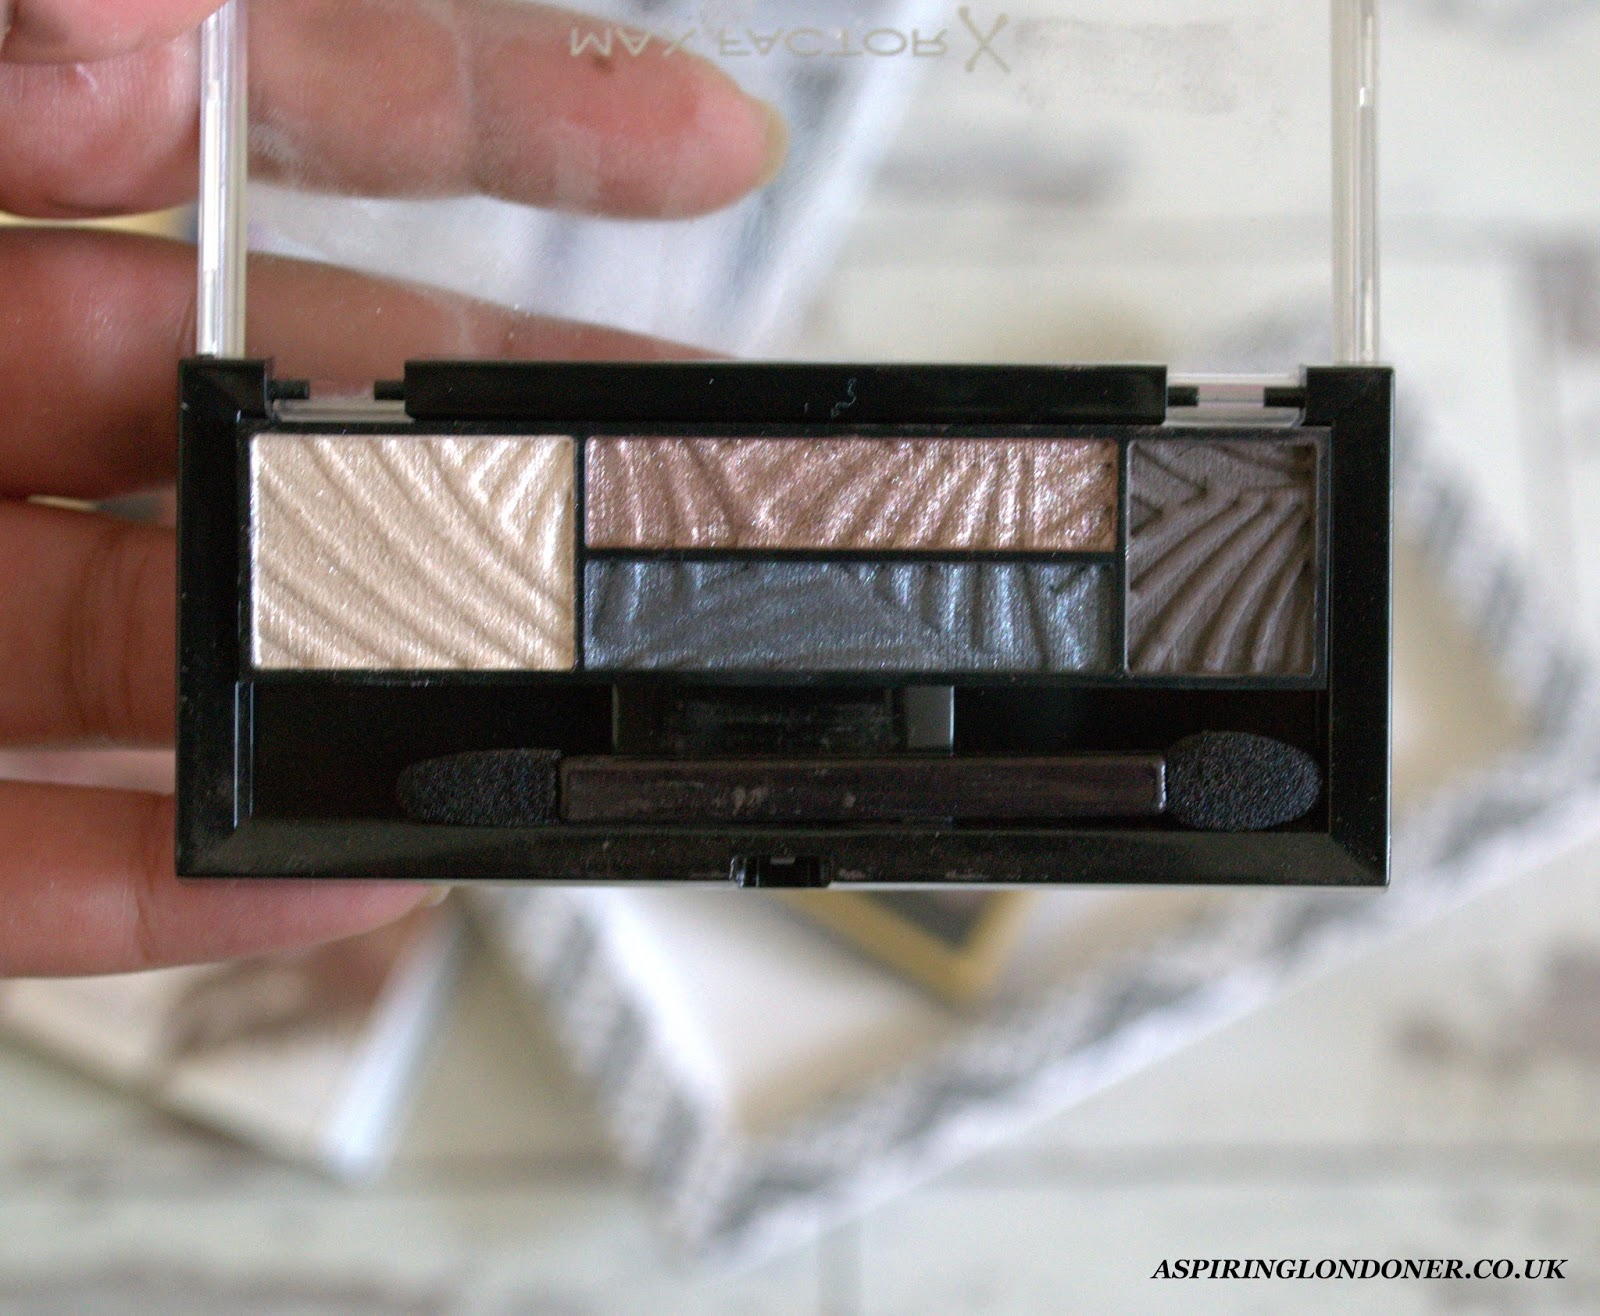 Max Factor Smokey Eye Drama Kits Lavish Onyx Review - Aspiring Londoner